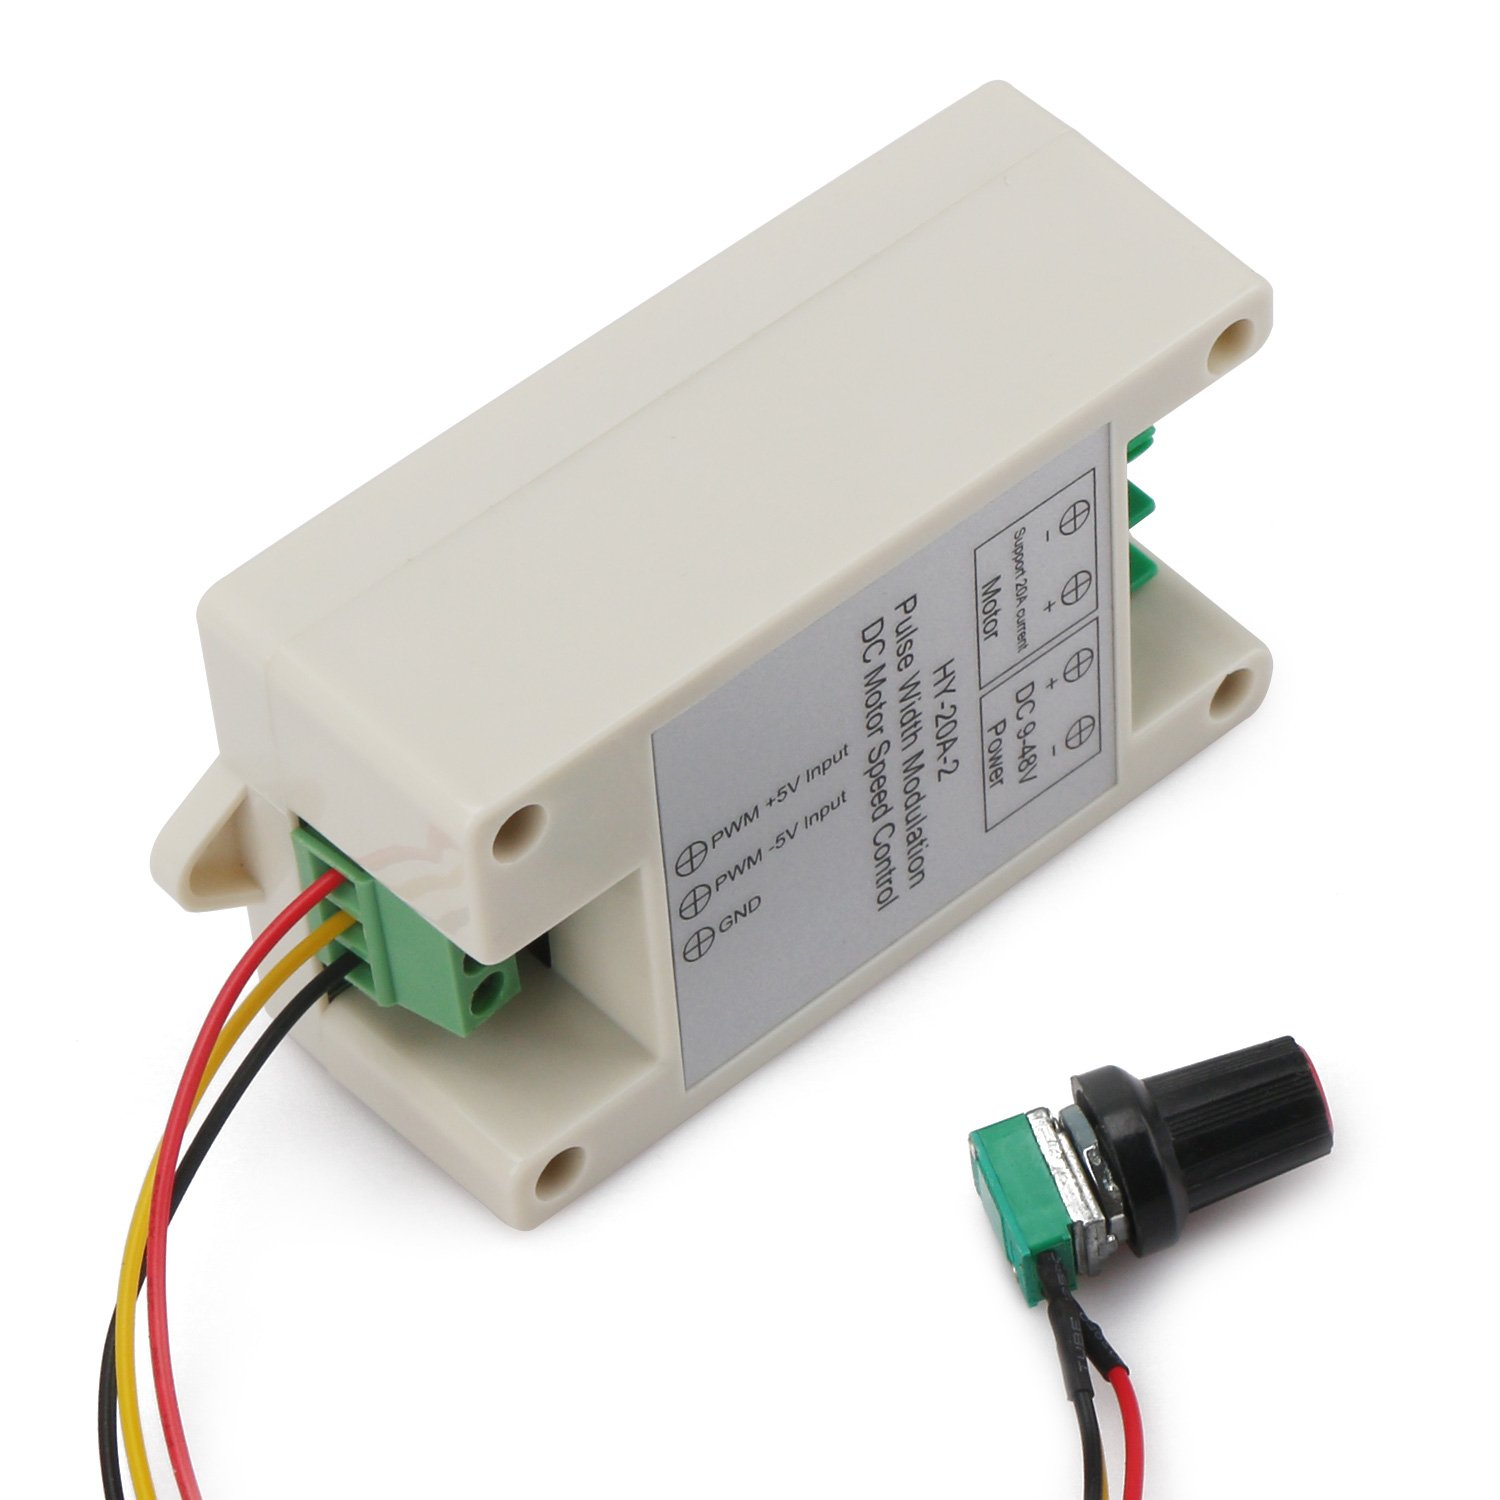 Drok Dc 9 48v 16khz Pwm Electric Motor Speed Controller Small 20a Control Of Using Pulse Width Modulation In This With Sensitive Knob Support 0 5v Frequency Converter Input